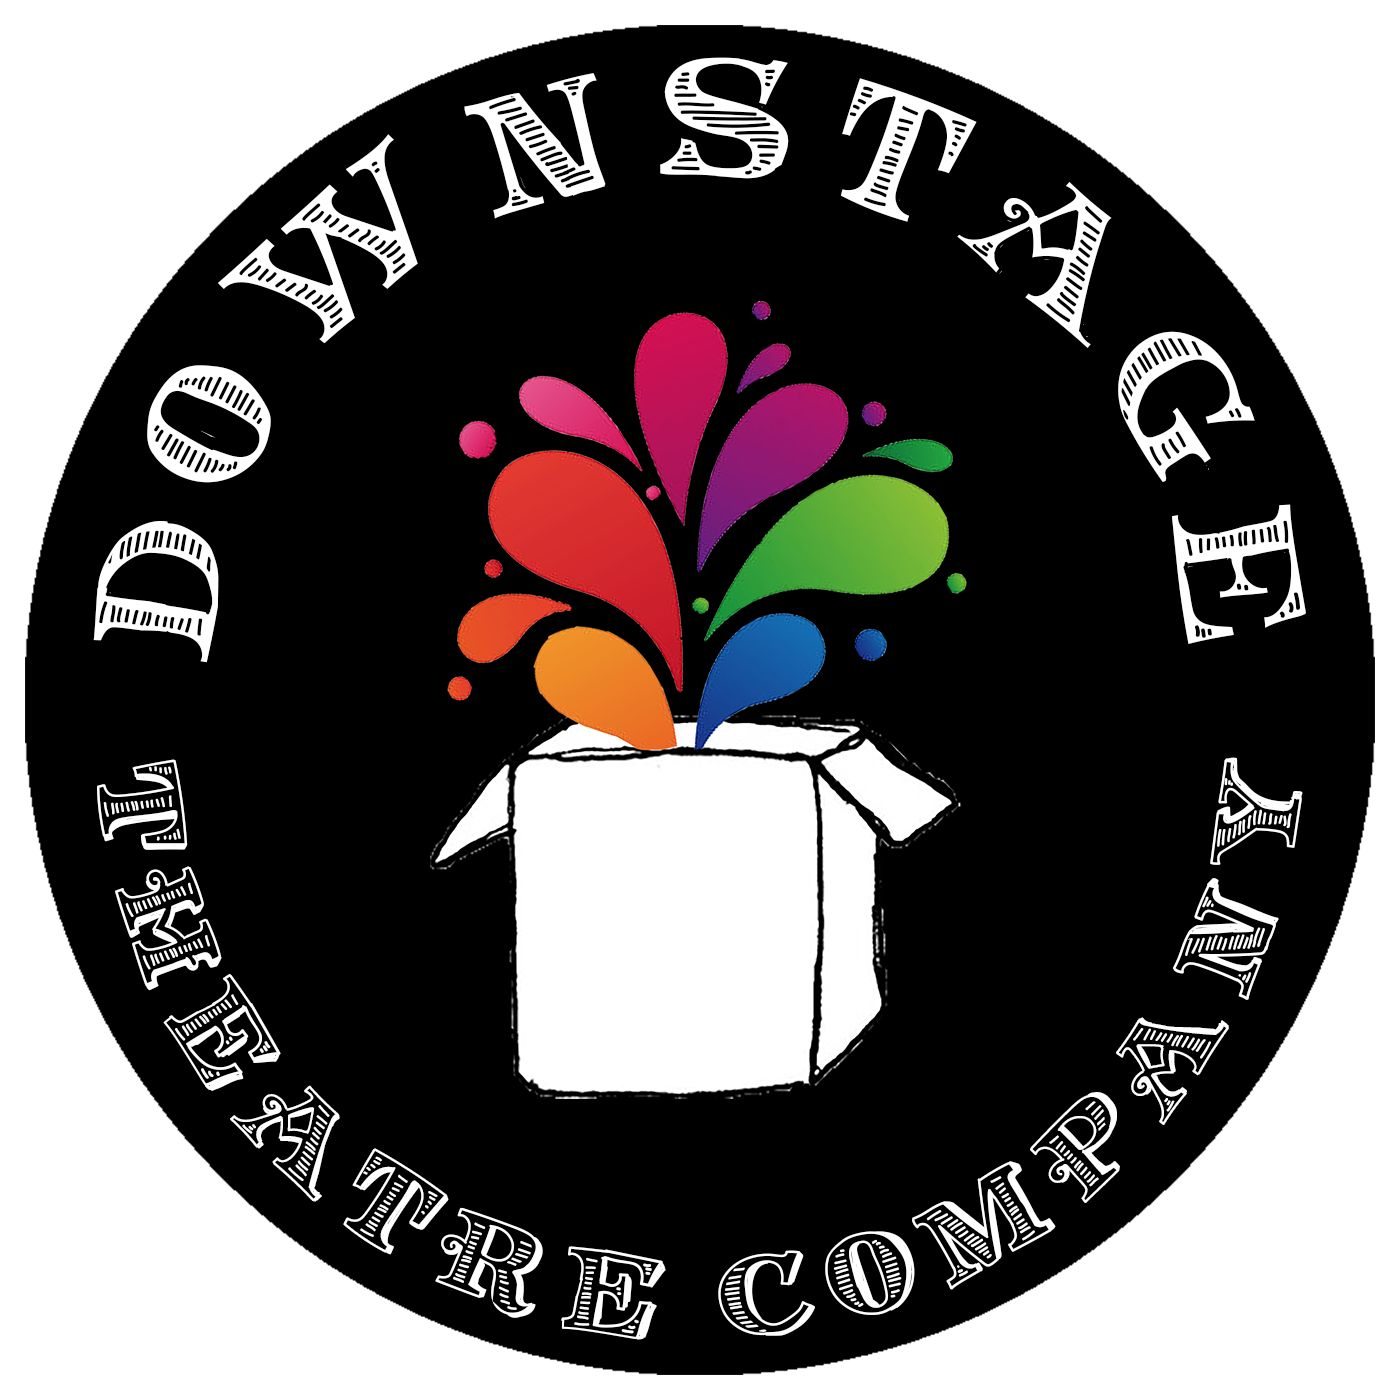 Downstage Theatre Company's Podcast Presents